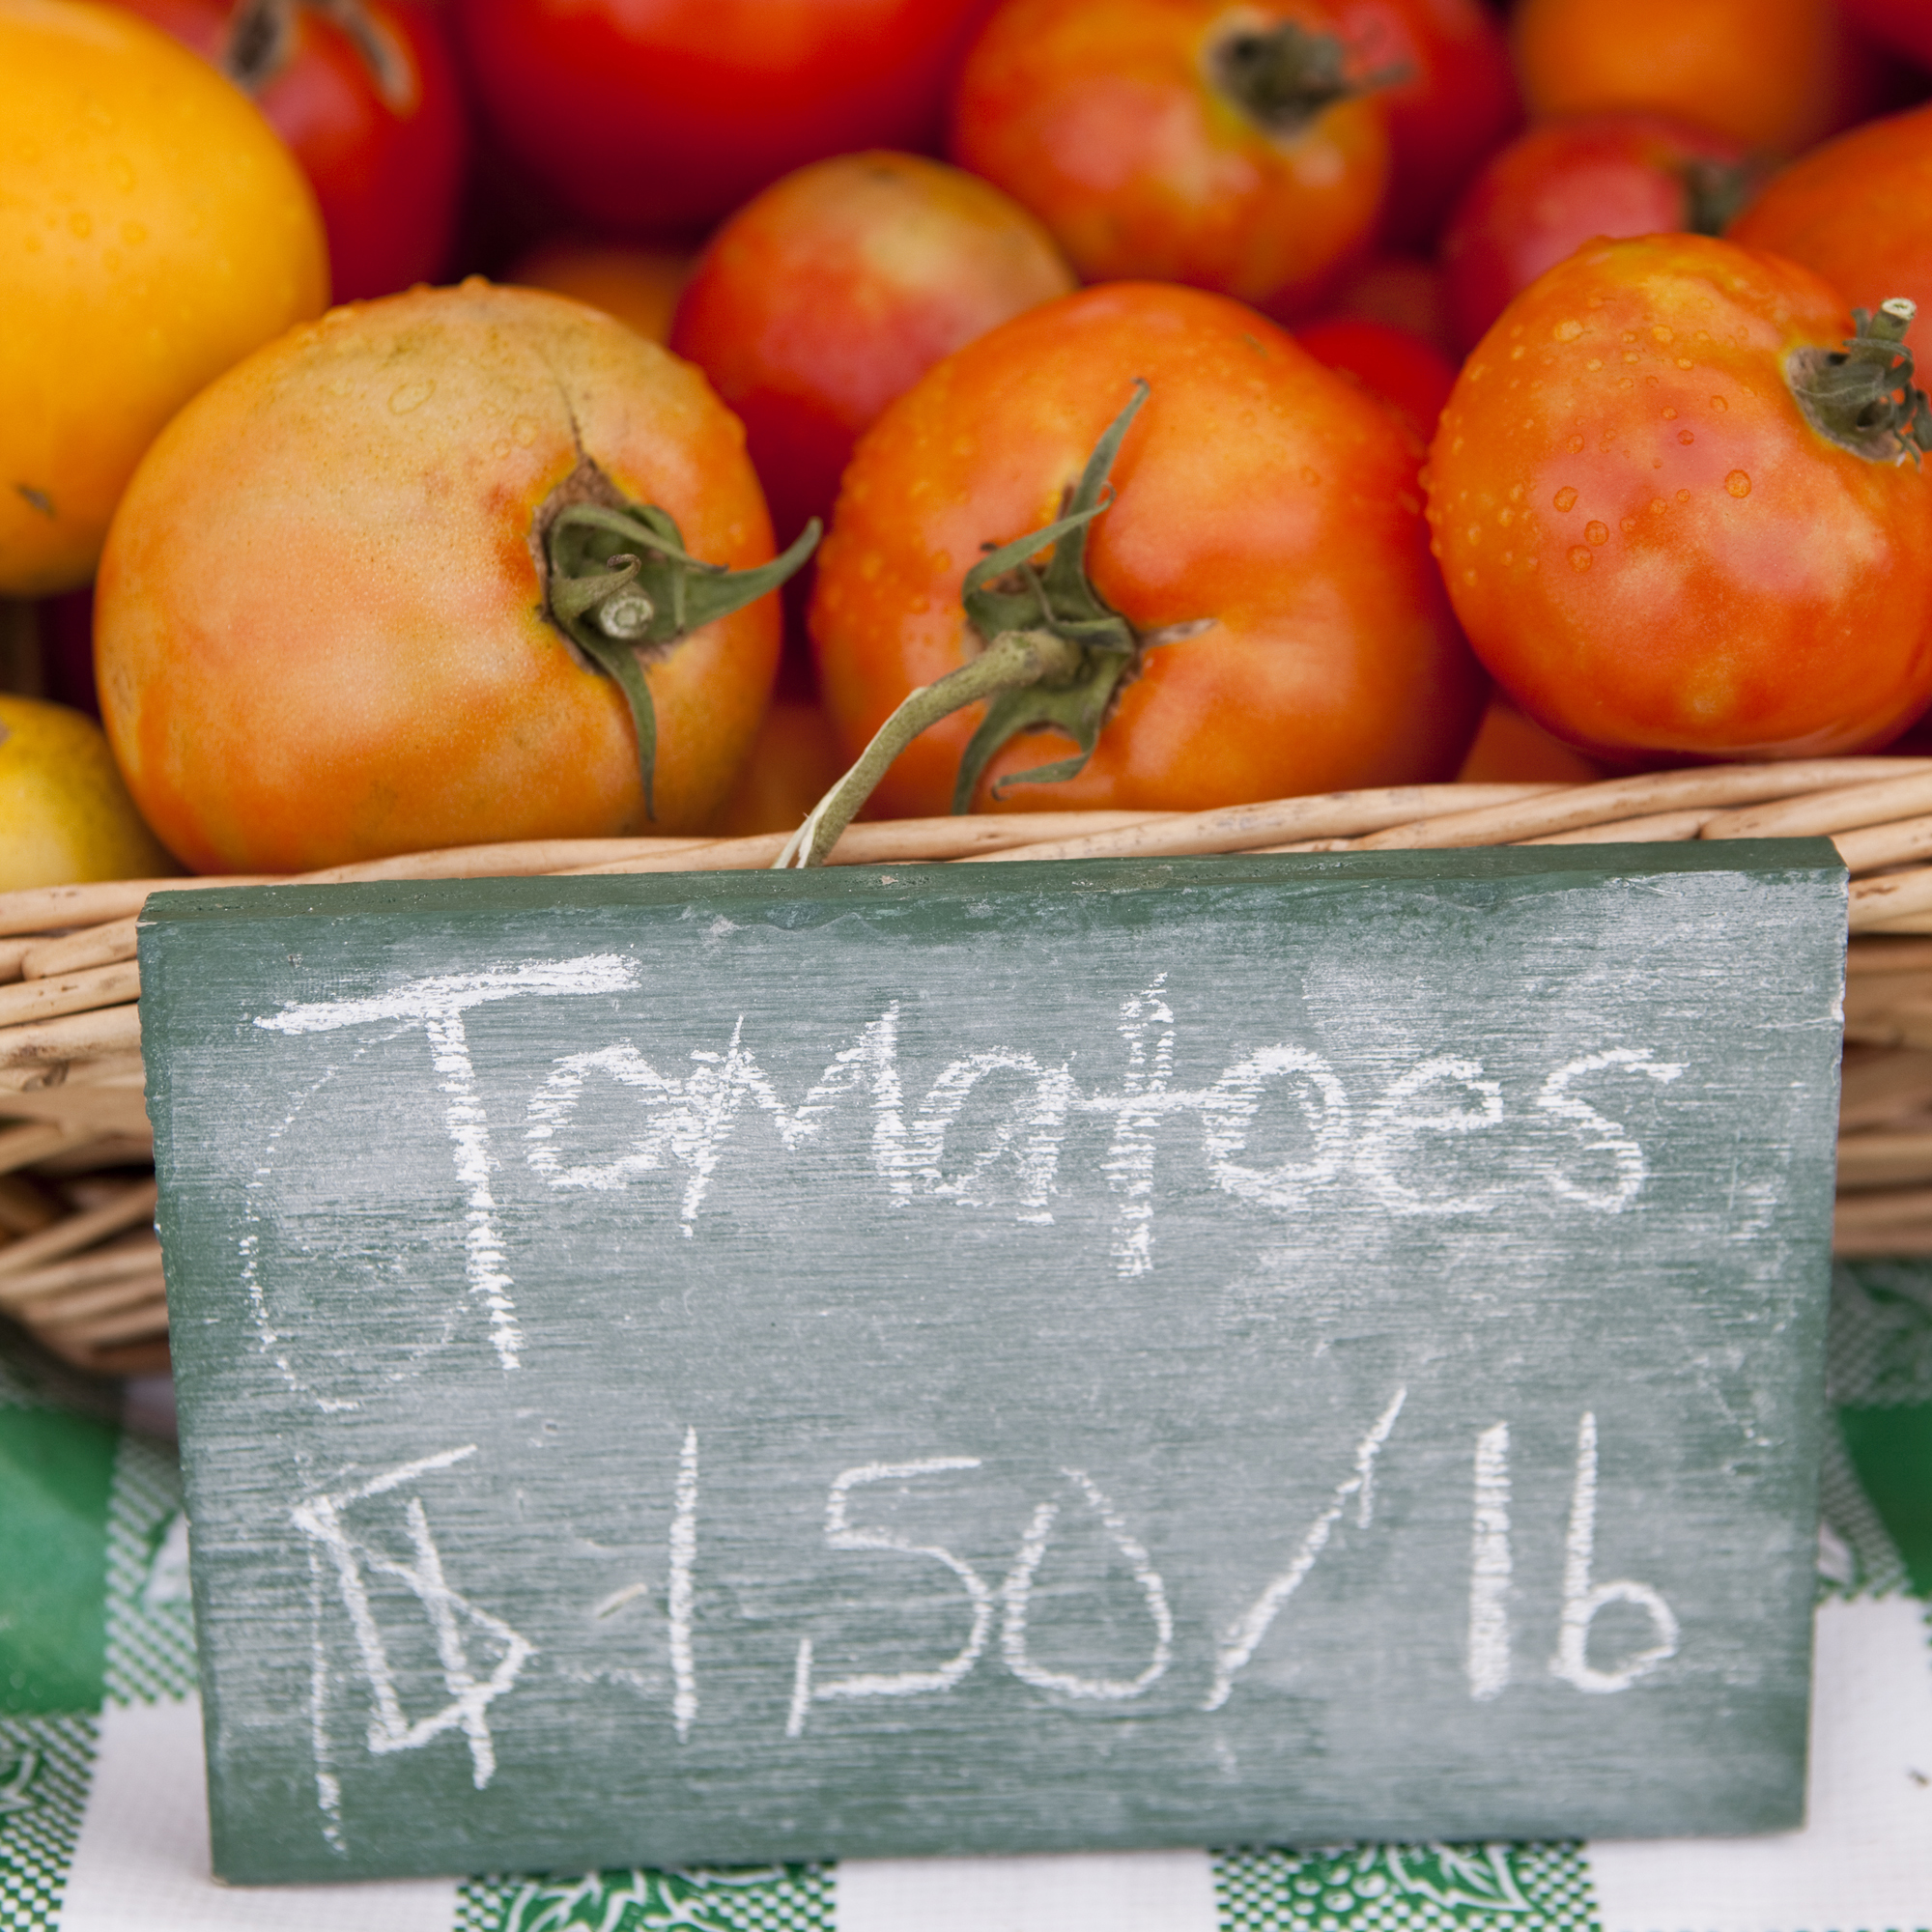 PHOTO: Tomatoes at market.